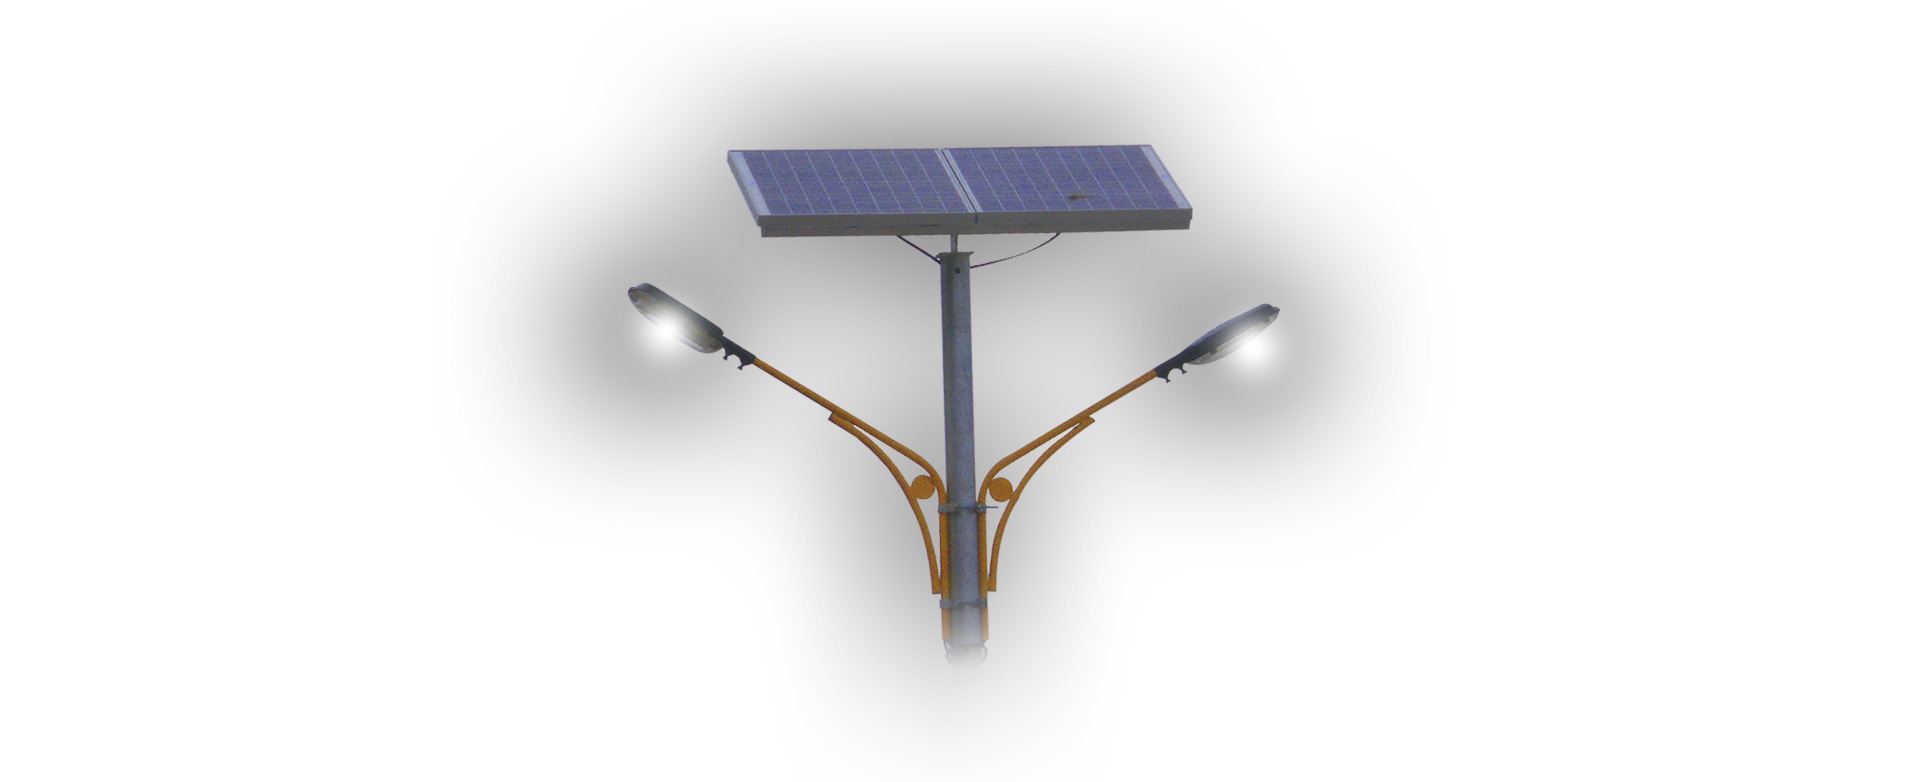 vesat solar lighting system